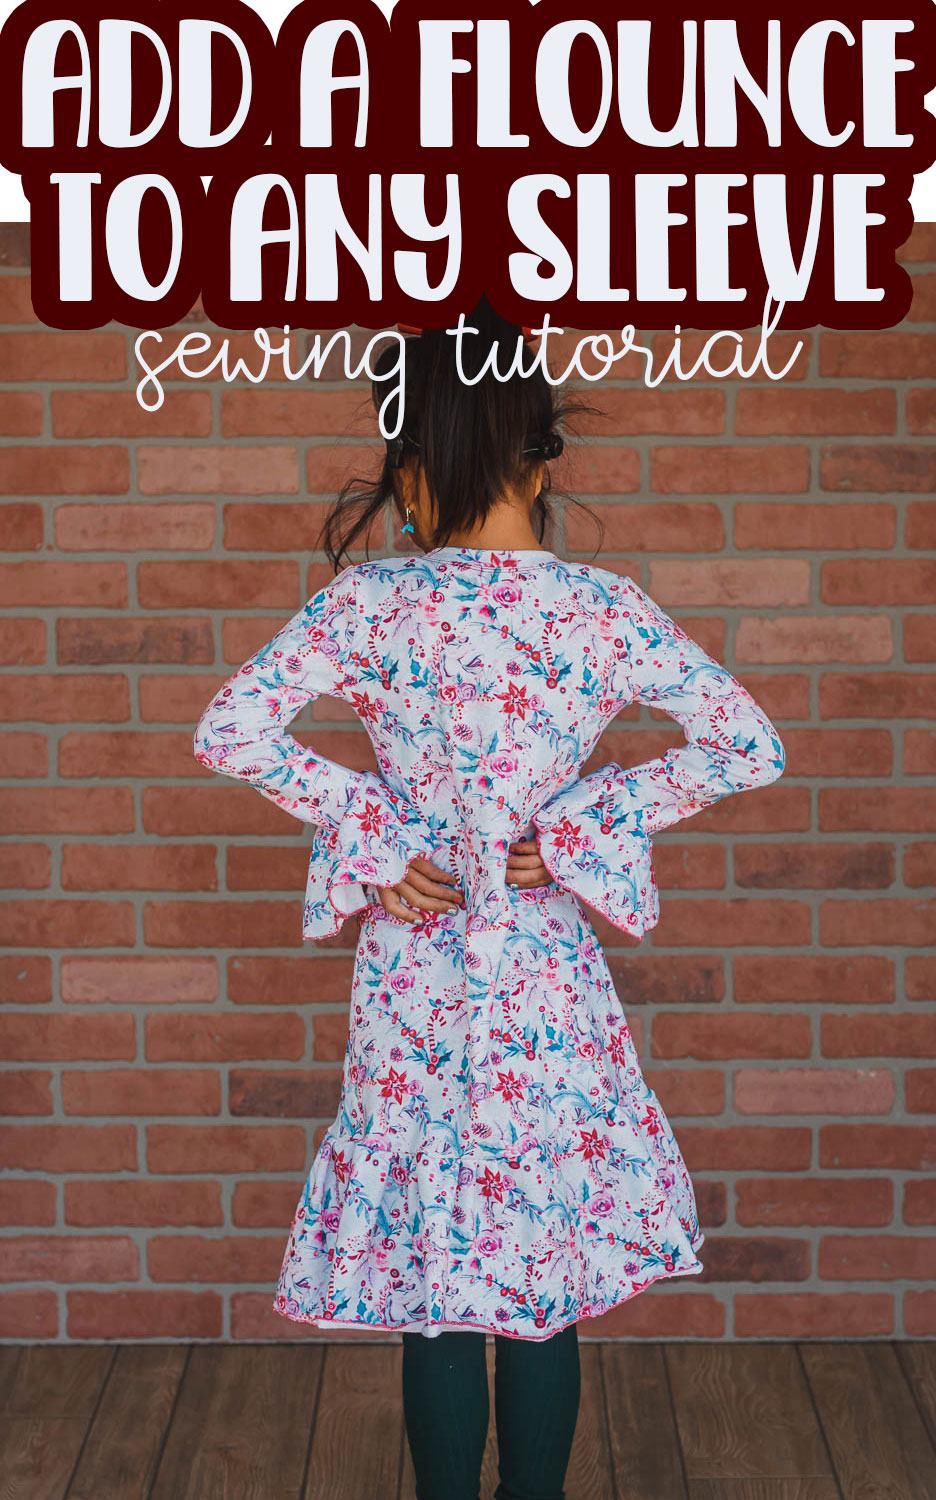 This tutorial will show you how to create and sew a sleeve flounce. You can add a flounce sleeve to the end of any sleeve or add it to a pattern you already have.